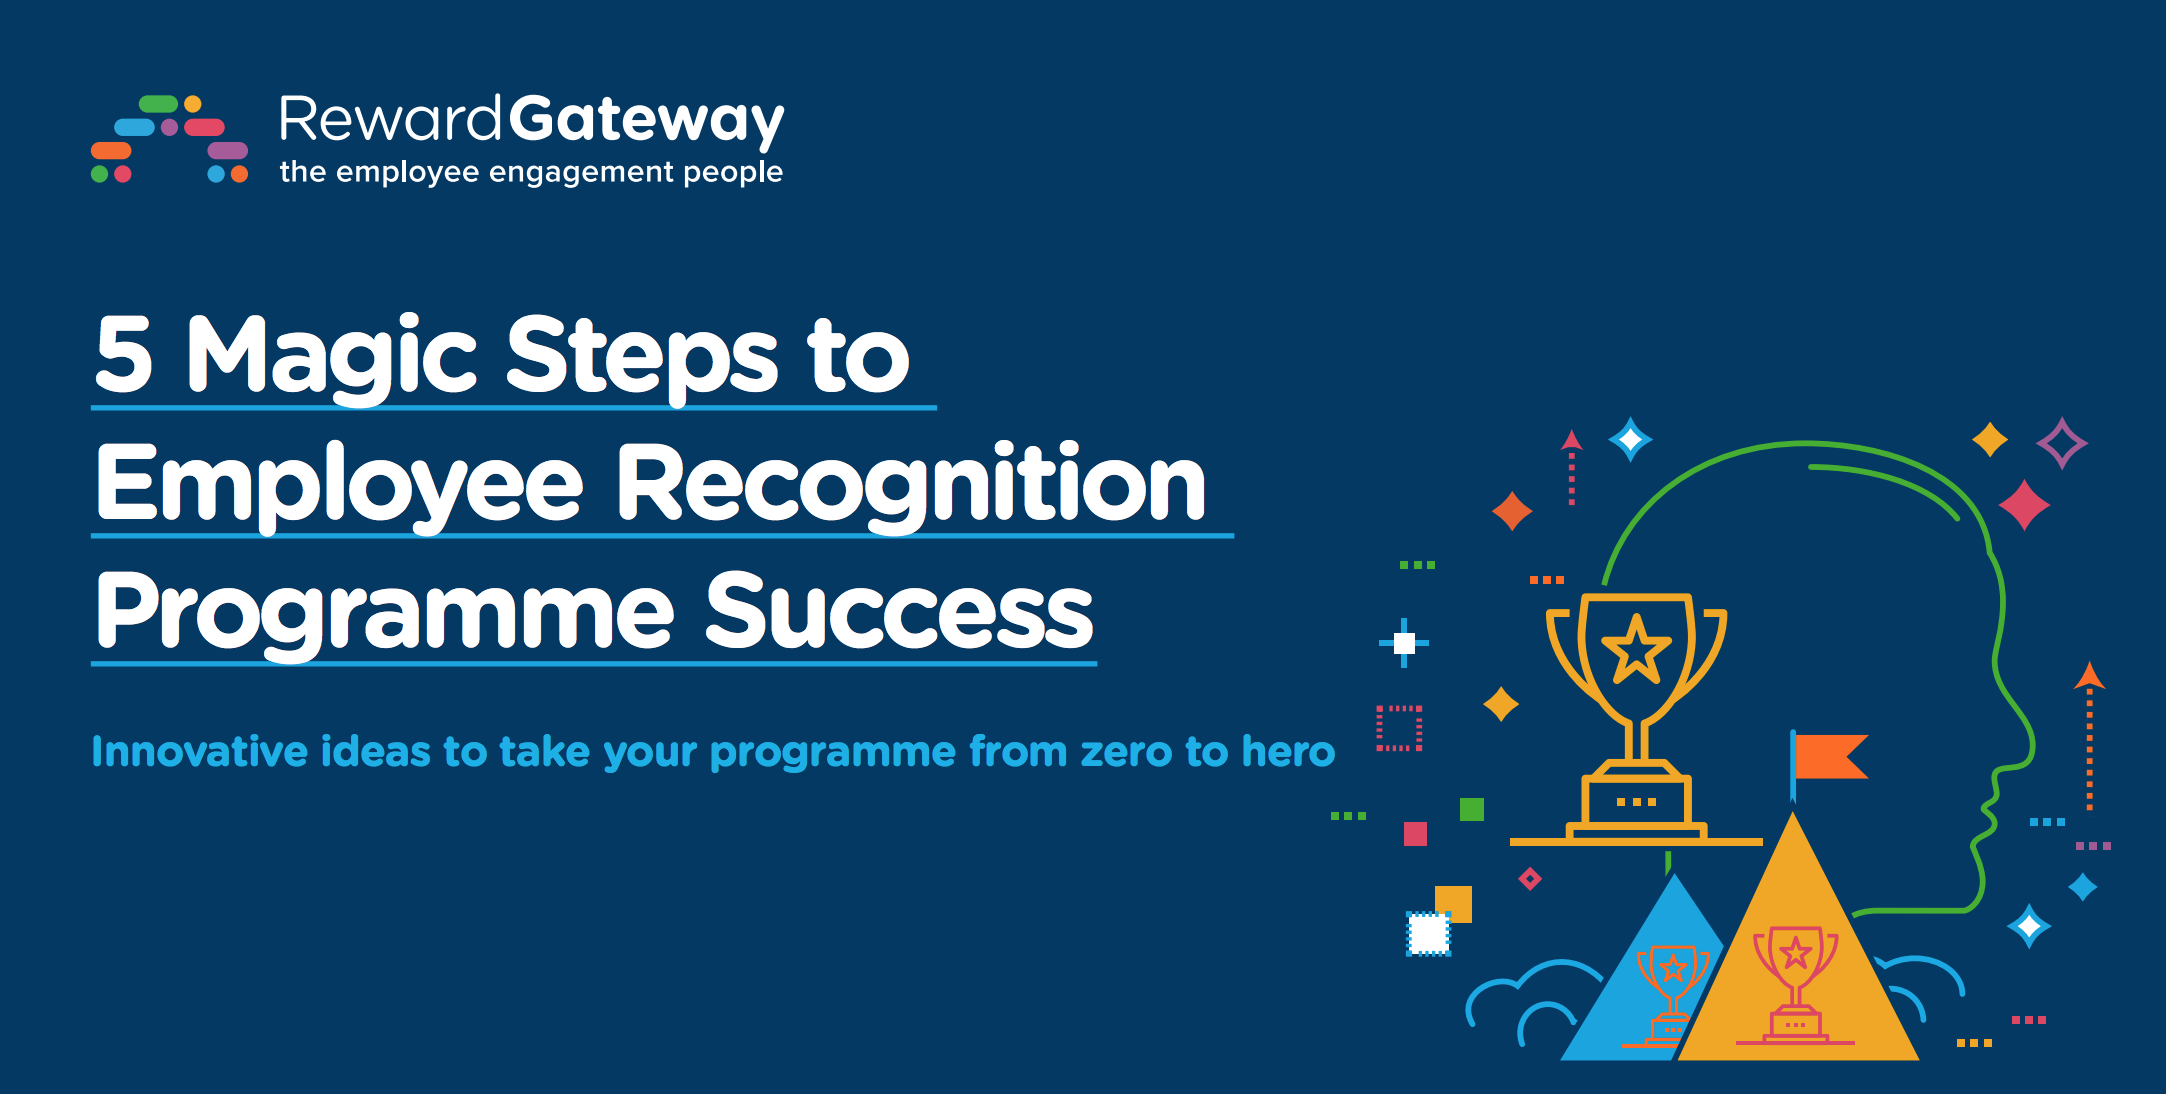 How to make employee recognition a success